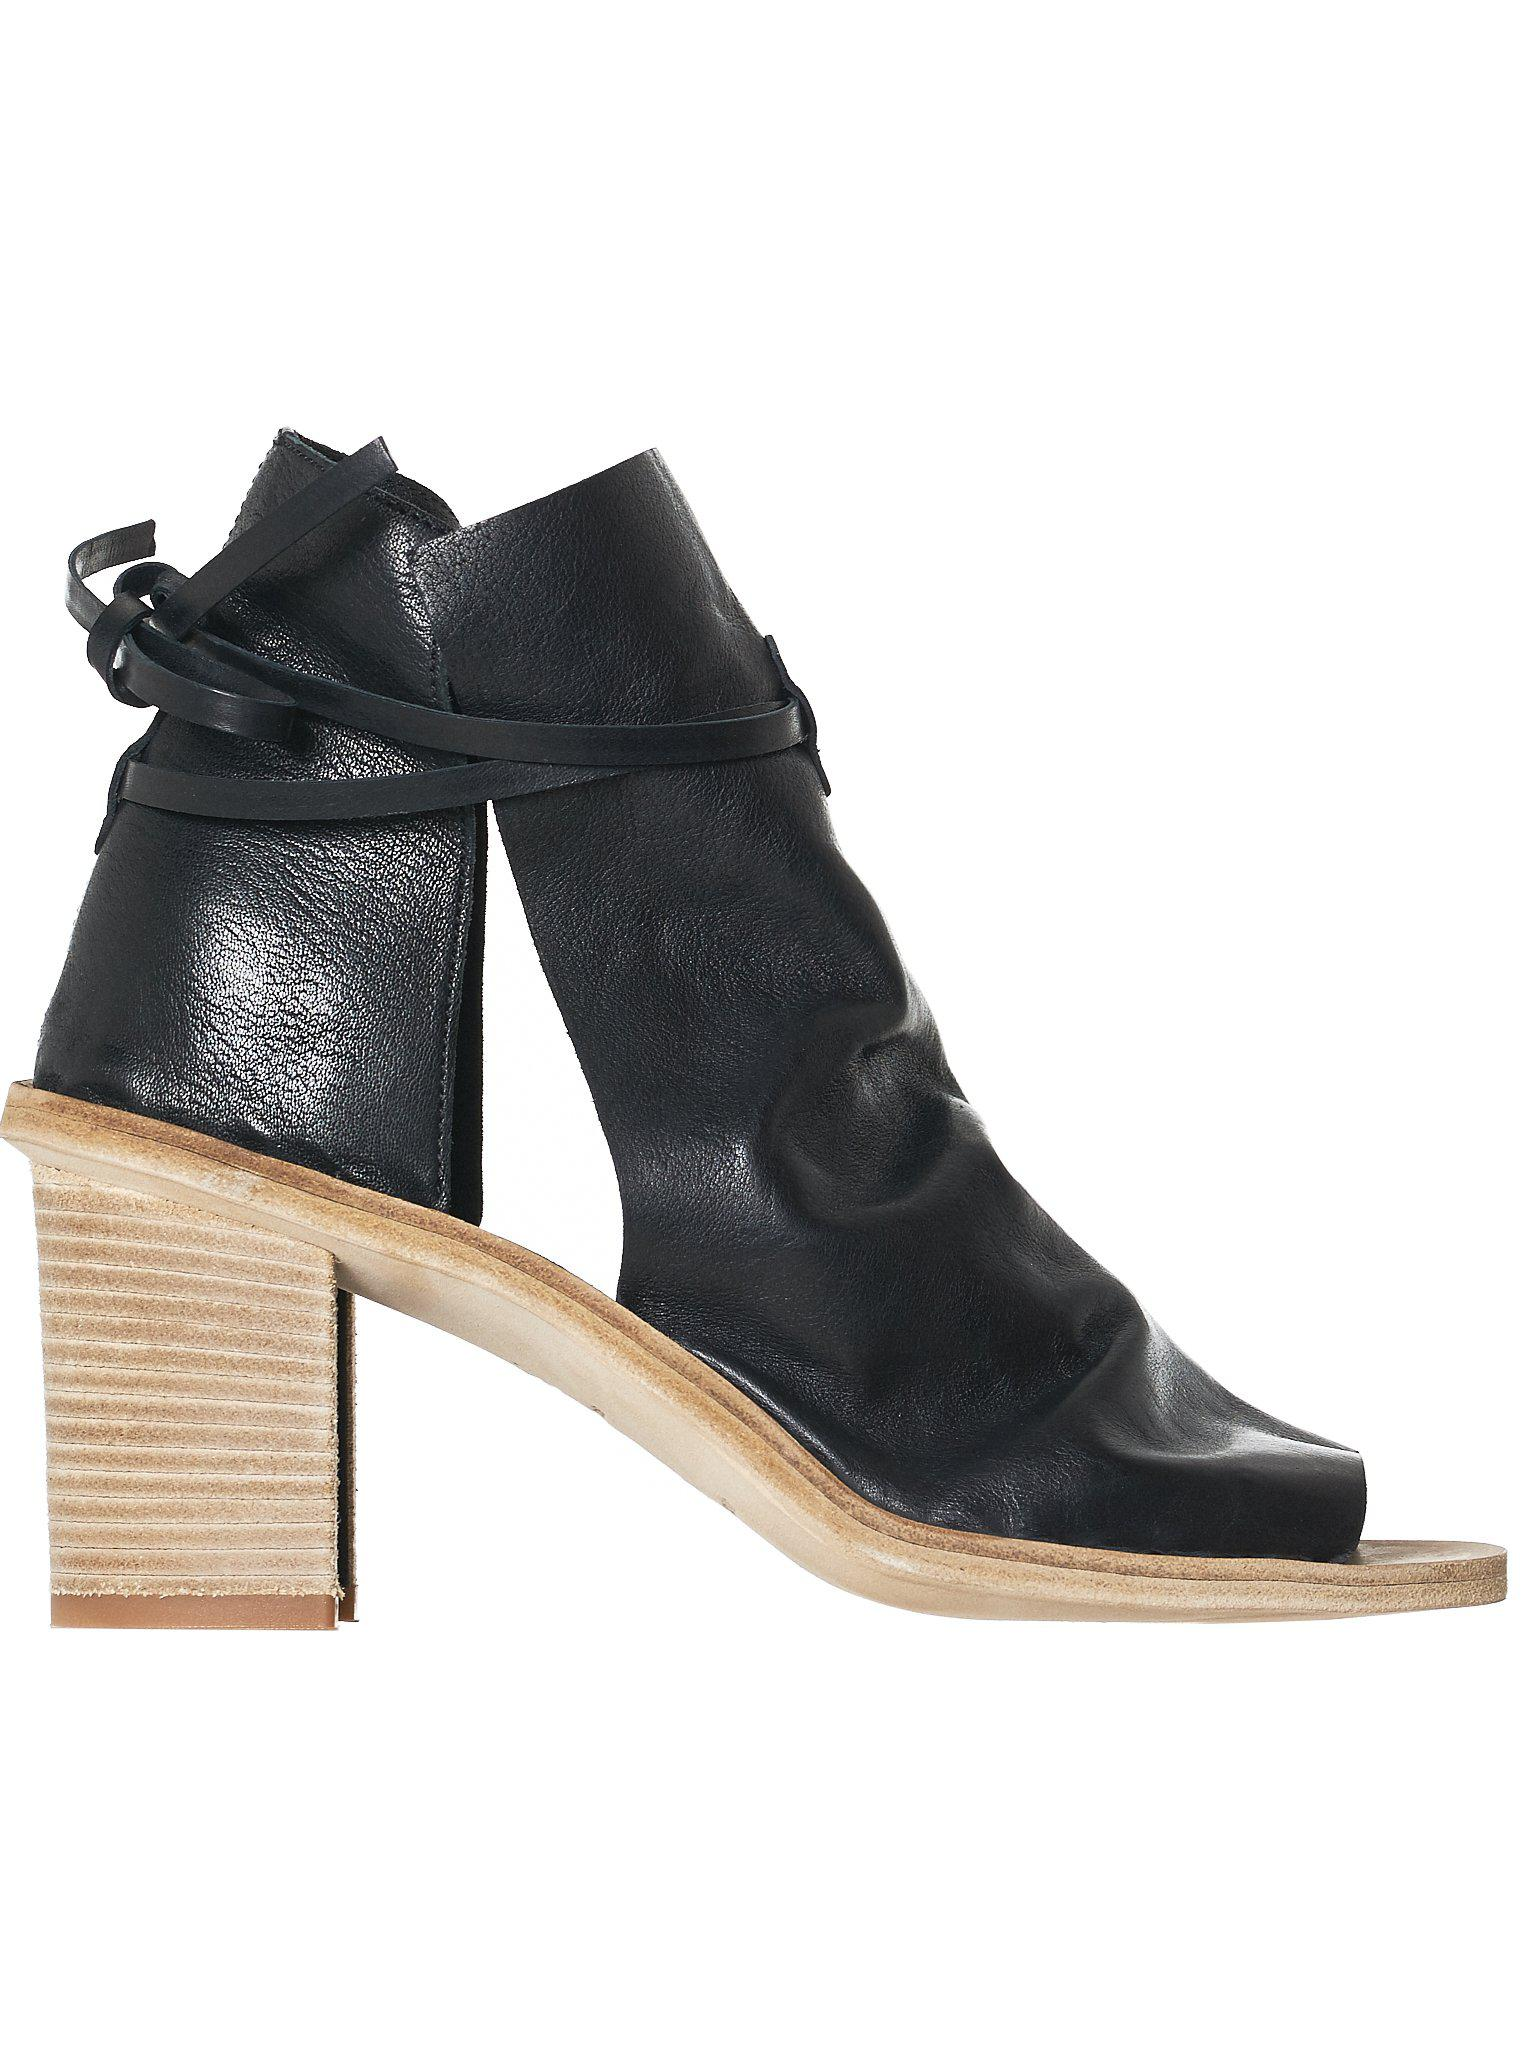 Officine creative Leather Heels BCdrD1